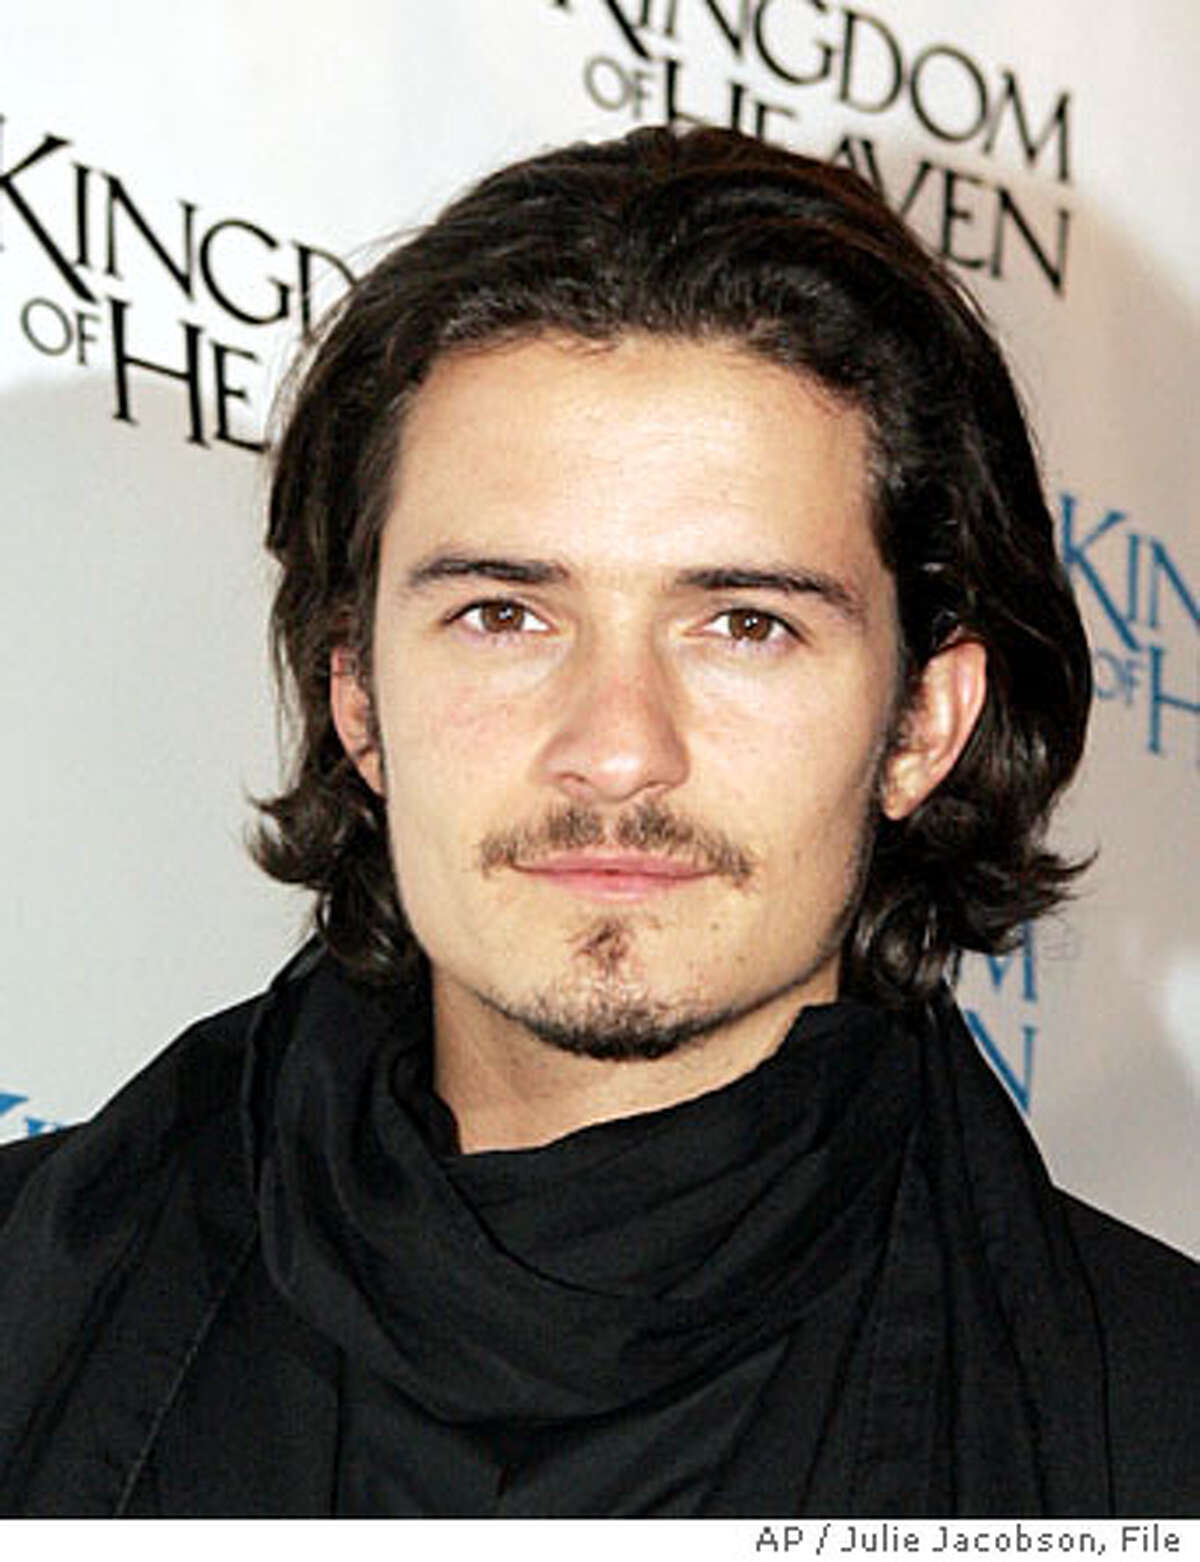 Orlando Bloom poses for photographers before watching the premiere of the movie ' ' Wednesday, May 4, 2005 in New York. (AP Photo/Julie Jacobson)